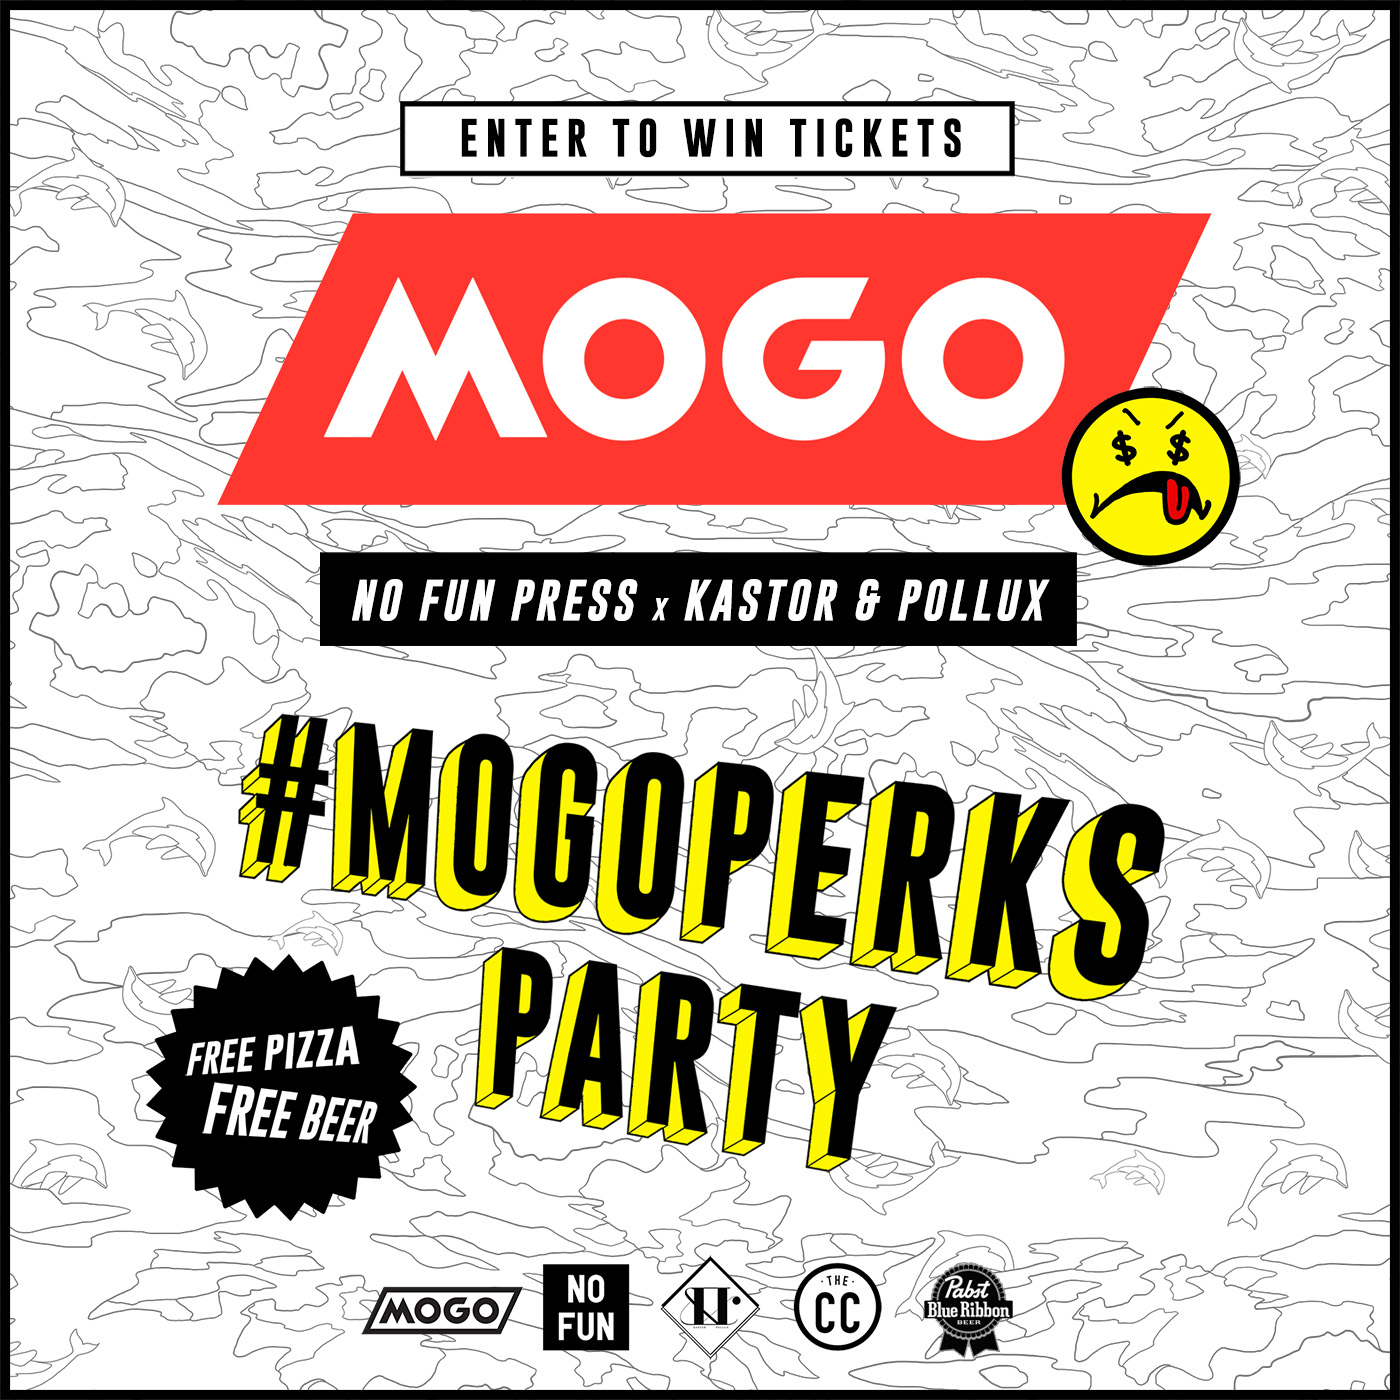 MOGO PERKS PARTY | CHRISTIAN CONFIDENTIAL